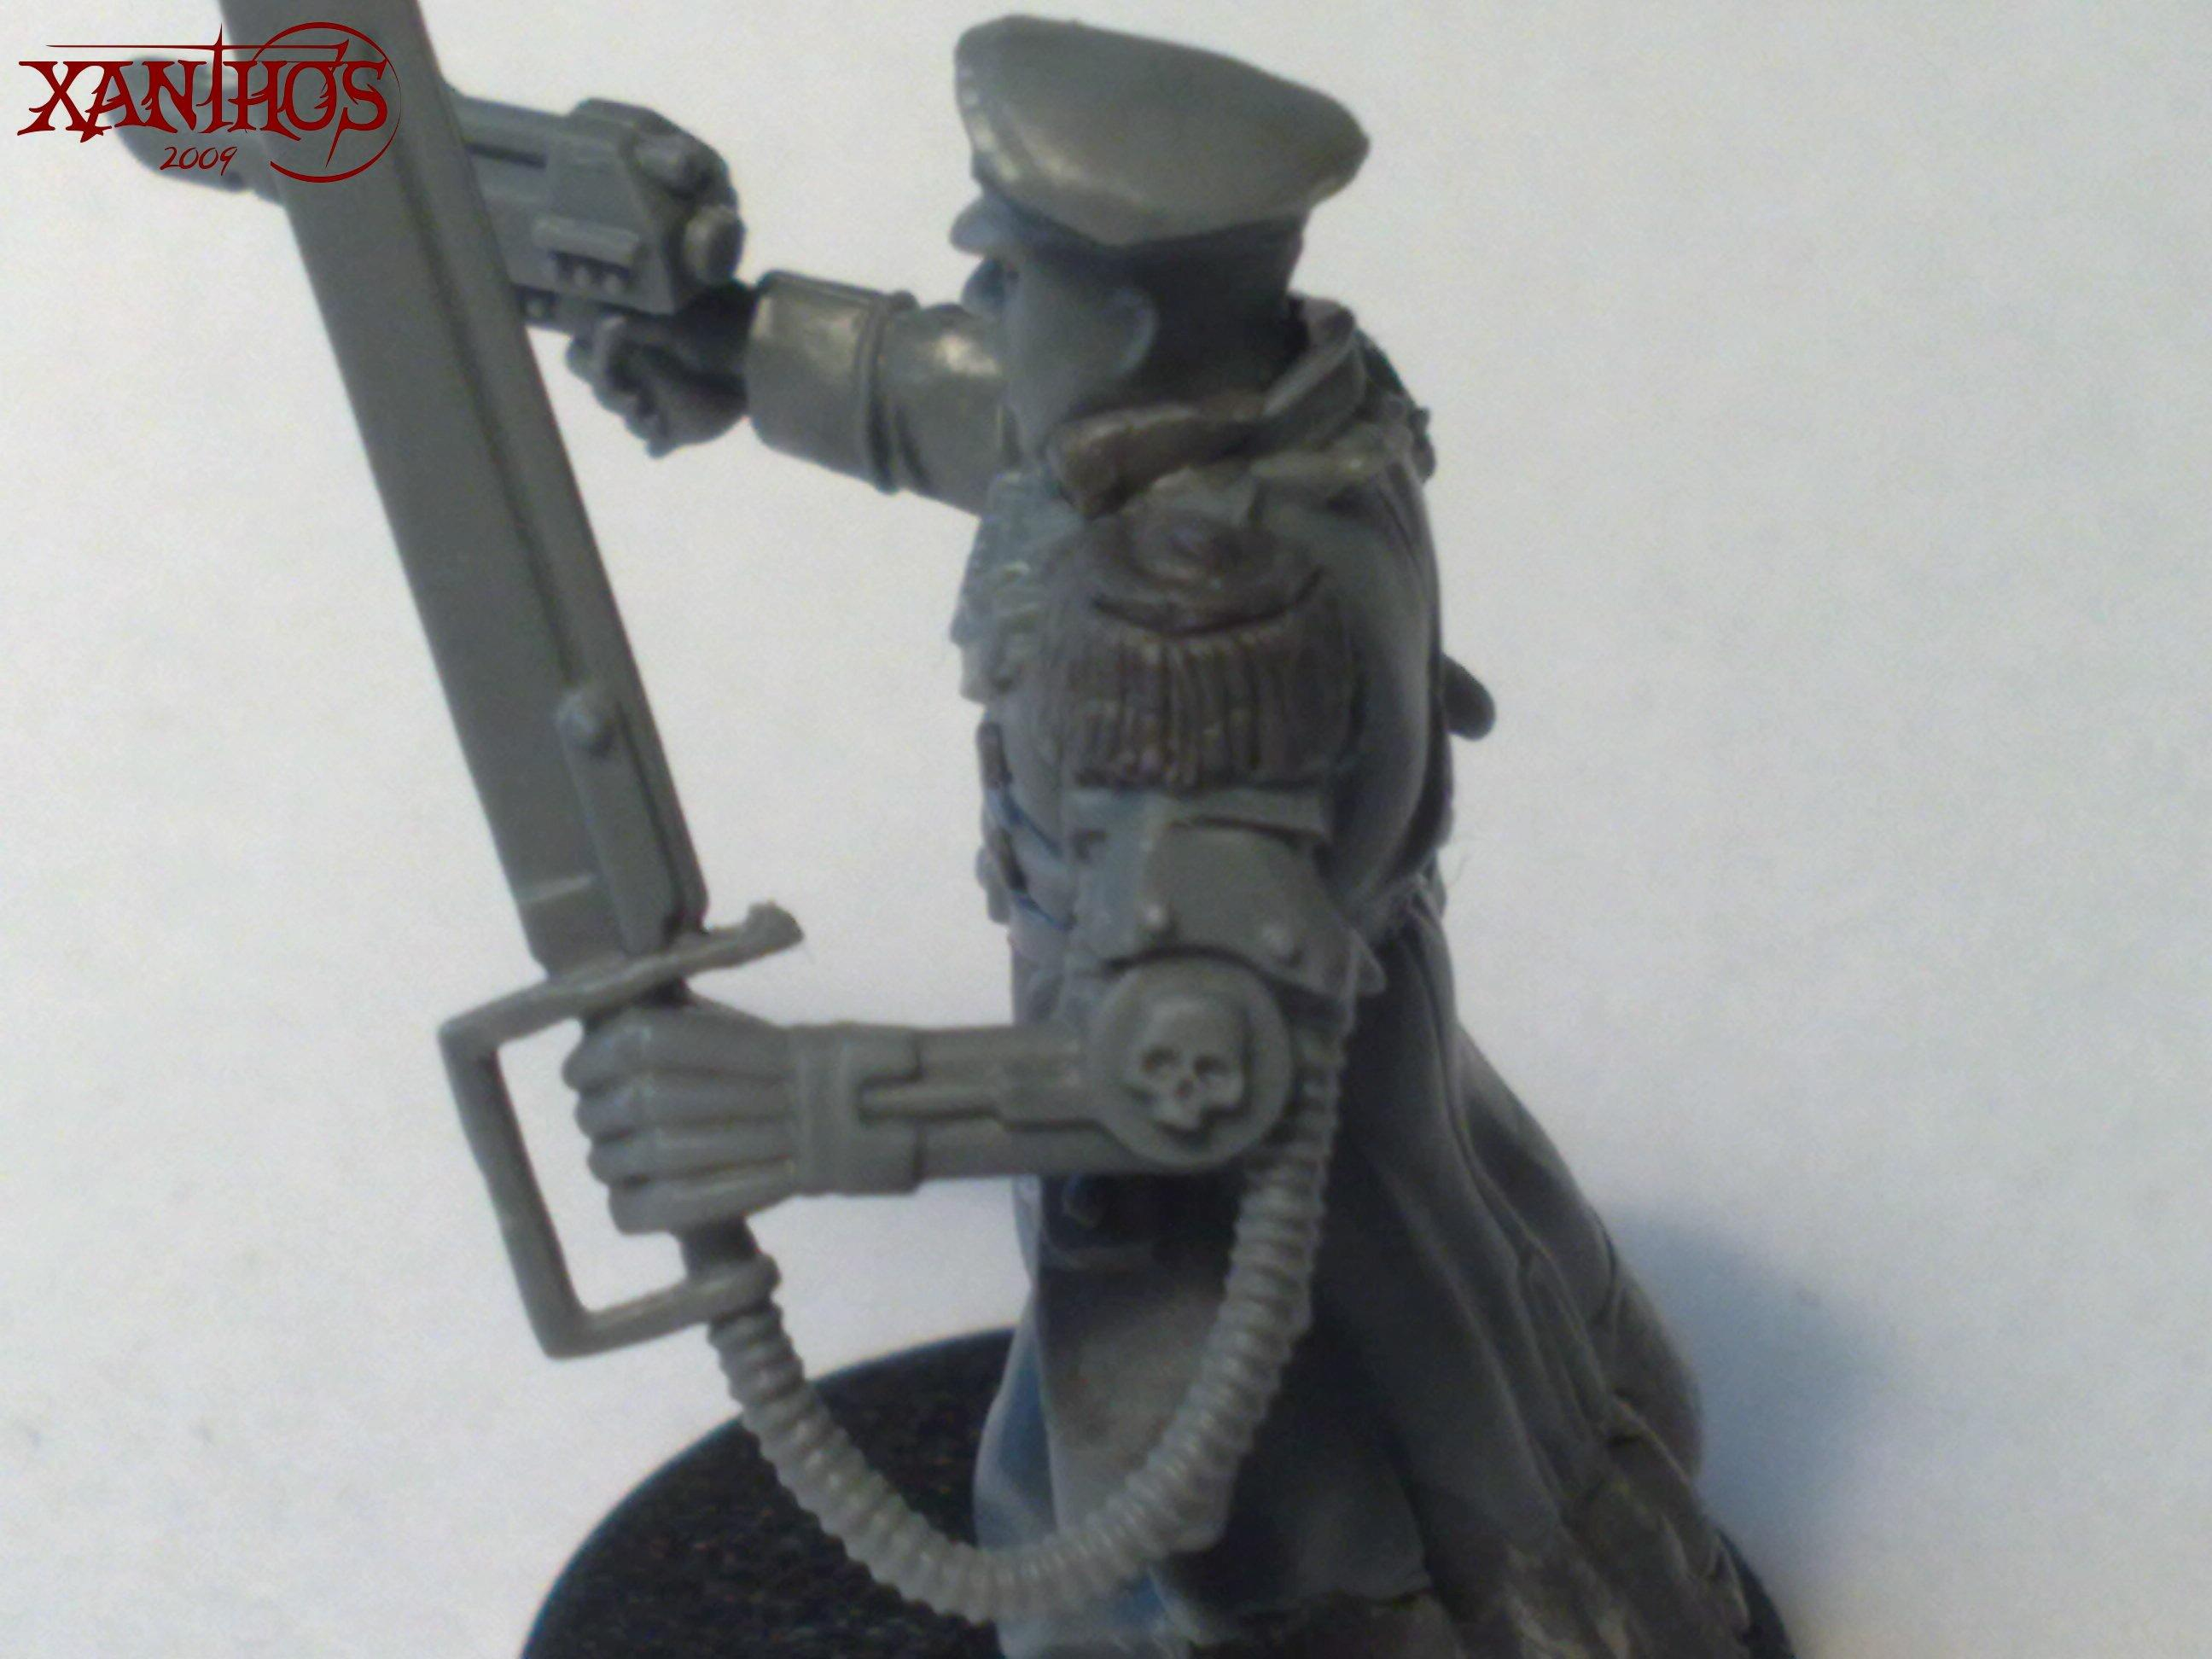 Cadians, Commissar, Imperial Guard, Officer, Power Sword